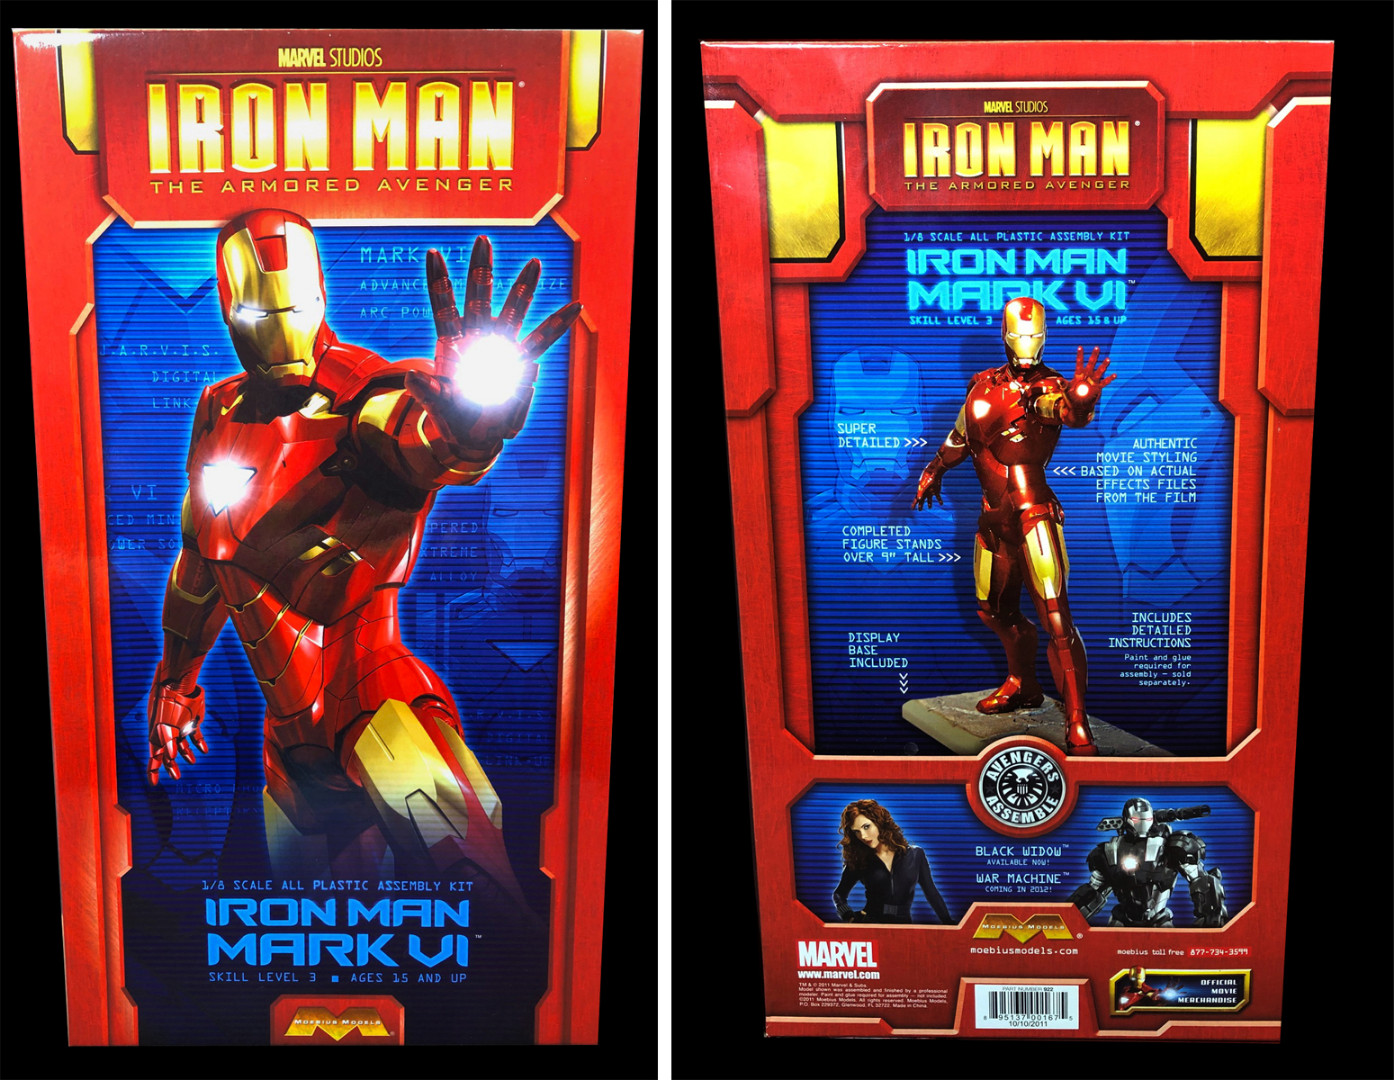 Iron man Mk 6 box art  08 15 2019.jpg